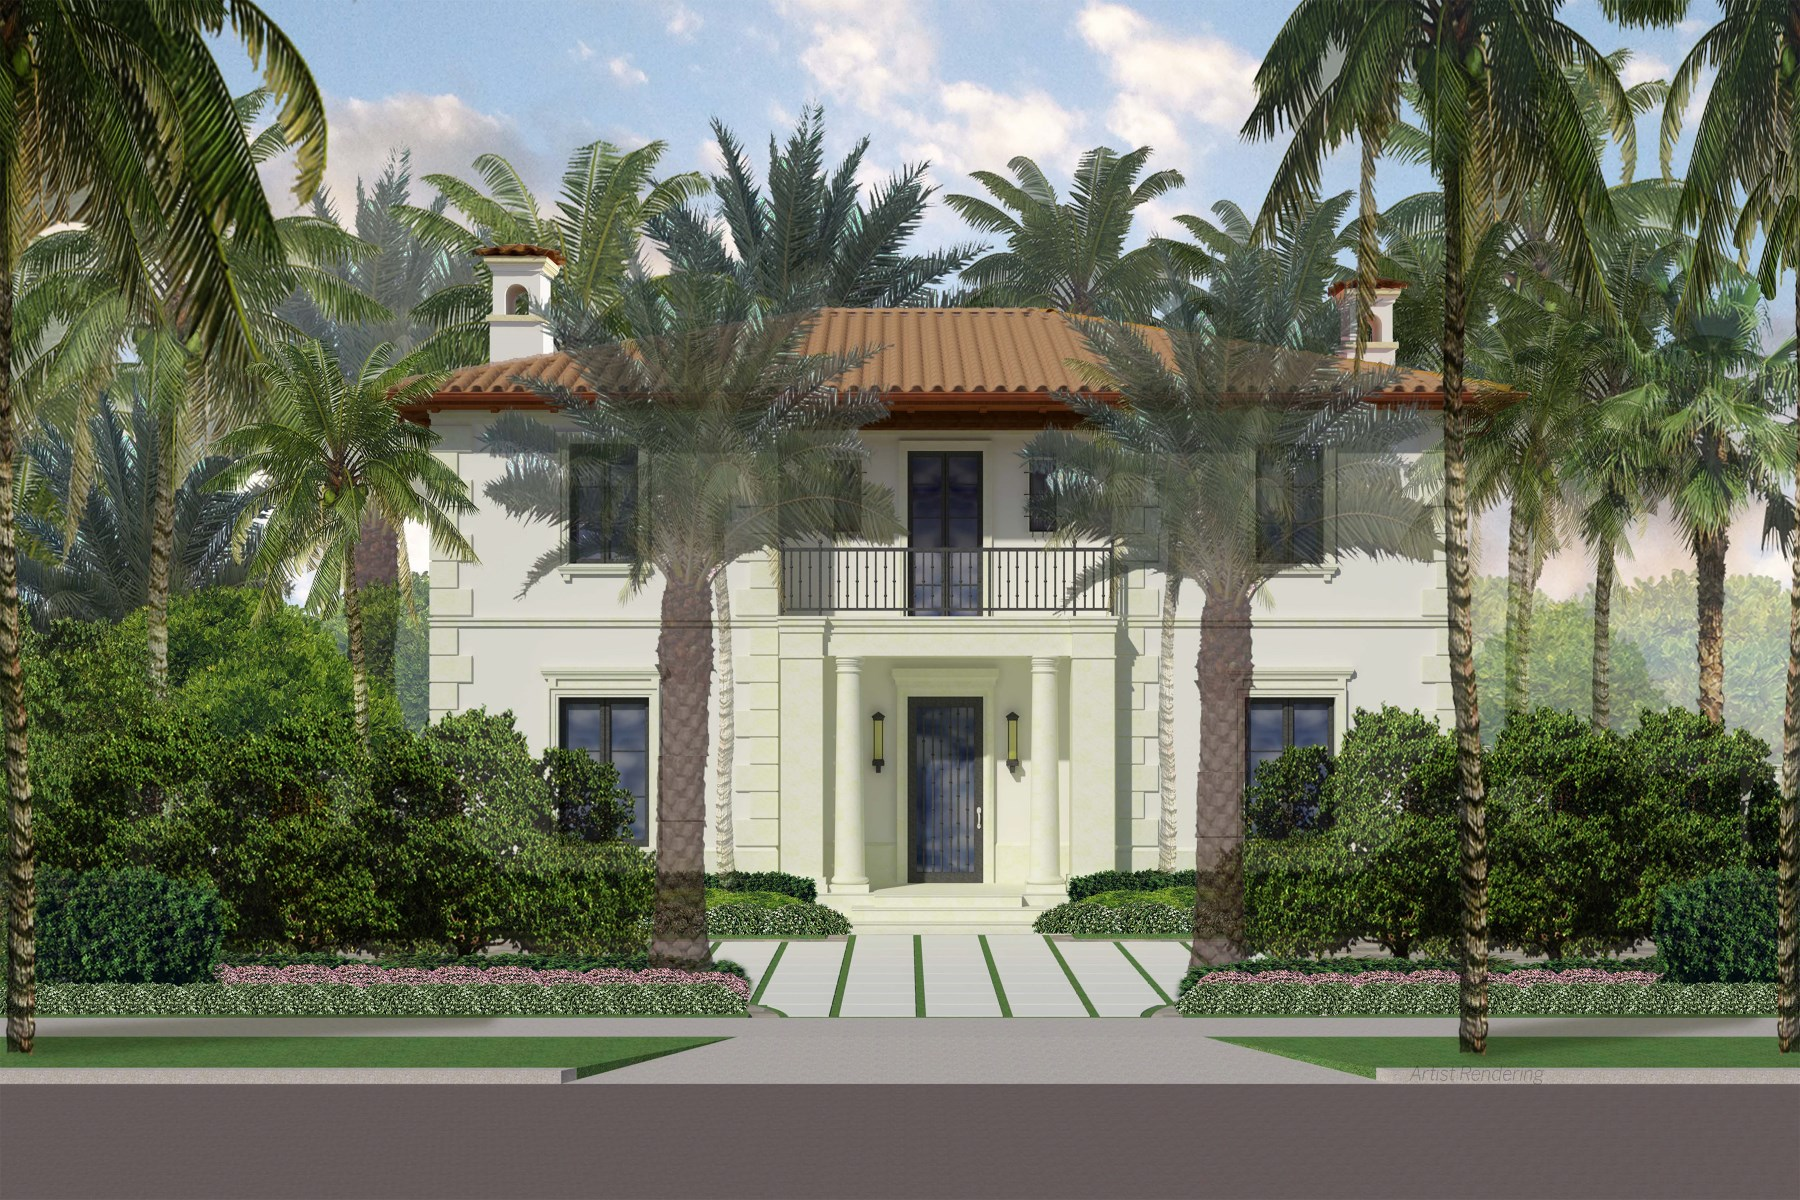 Casa para uma família para Venda às Mid-Town Palm Beach New Construction 280 N County Rd North End, Palm Beach, Florida, 33480 Estados Unidos